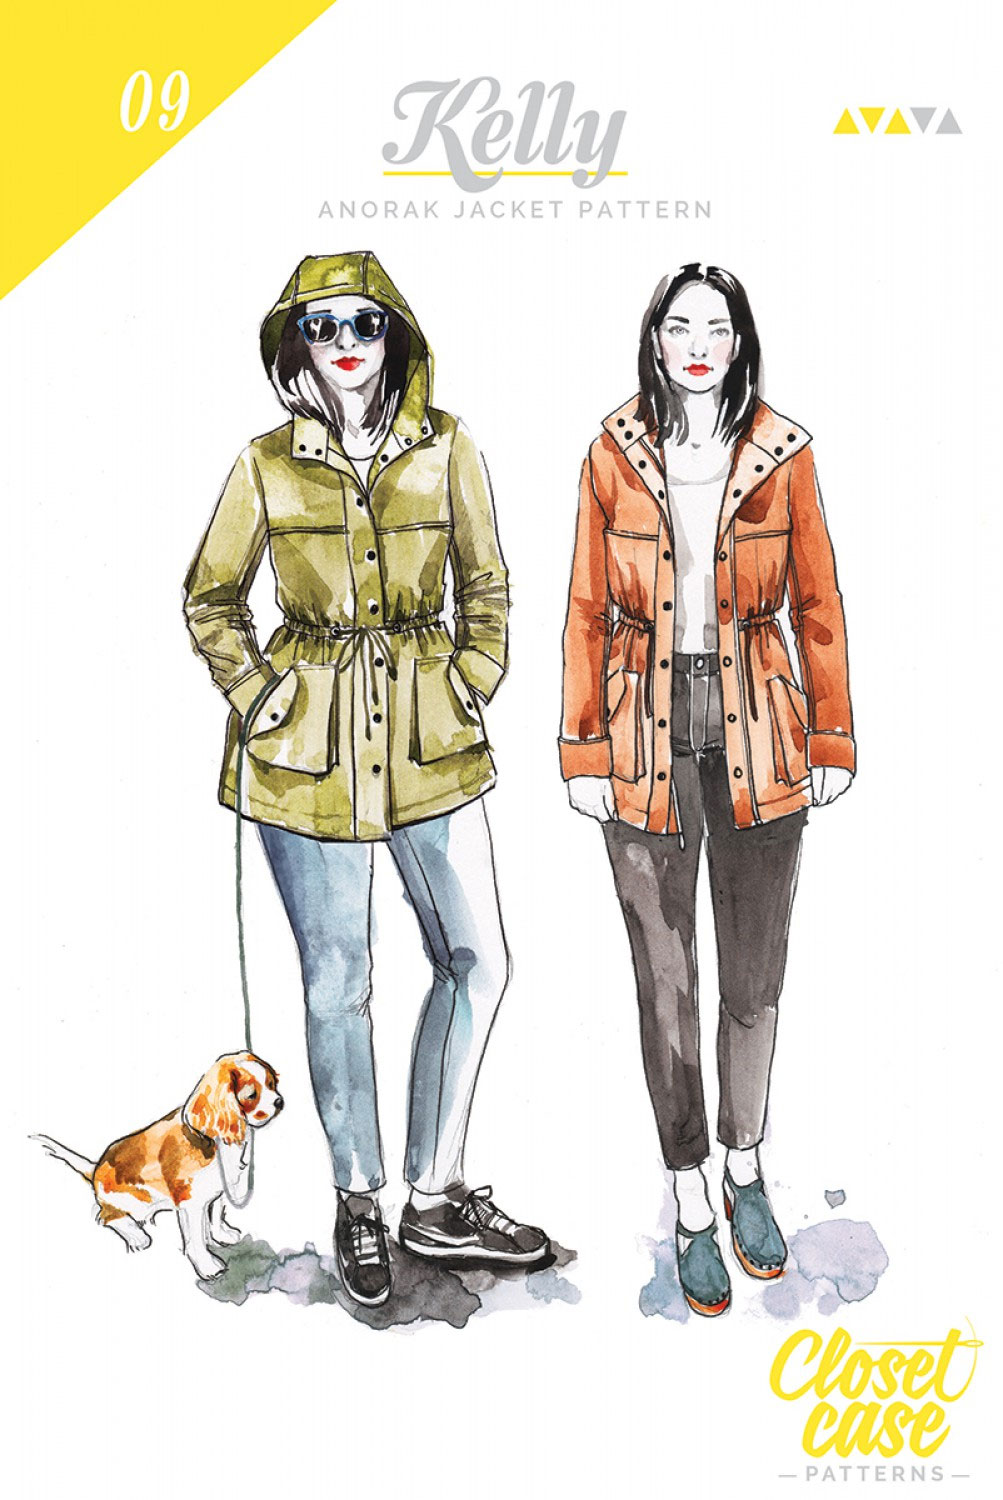 Kelly-Anorak-sewing-pattern-from-Closet-Case-front